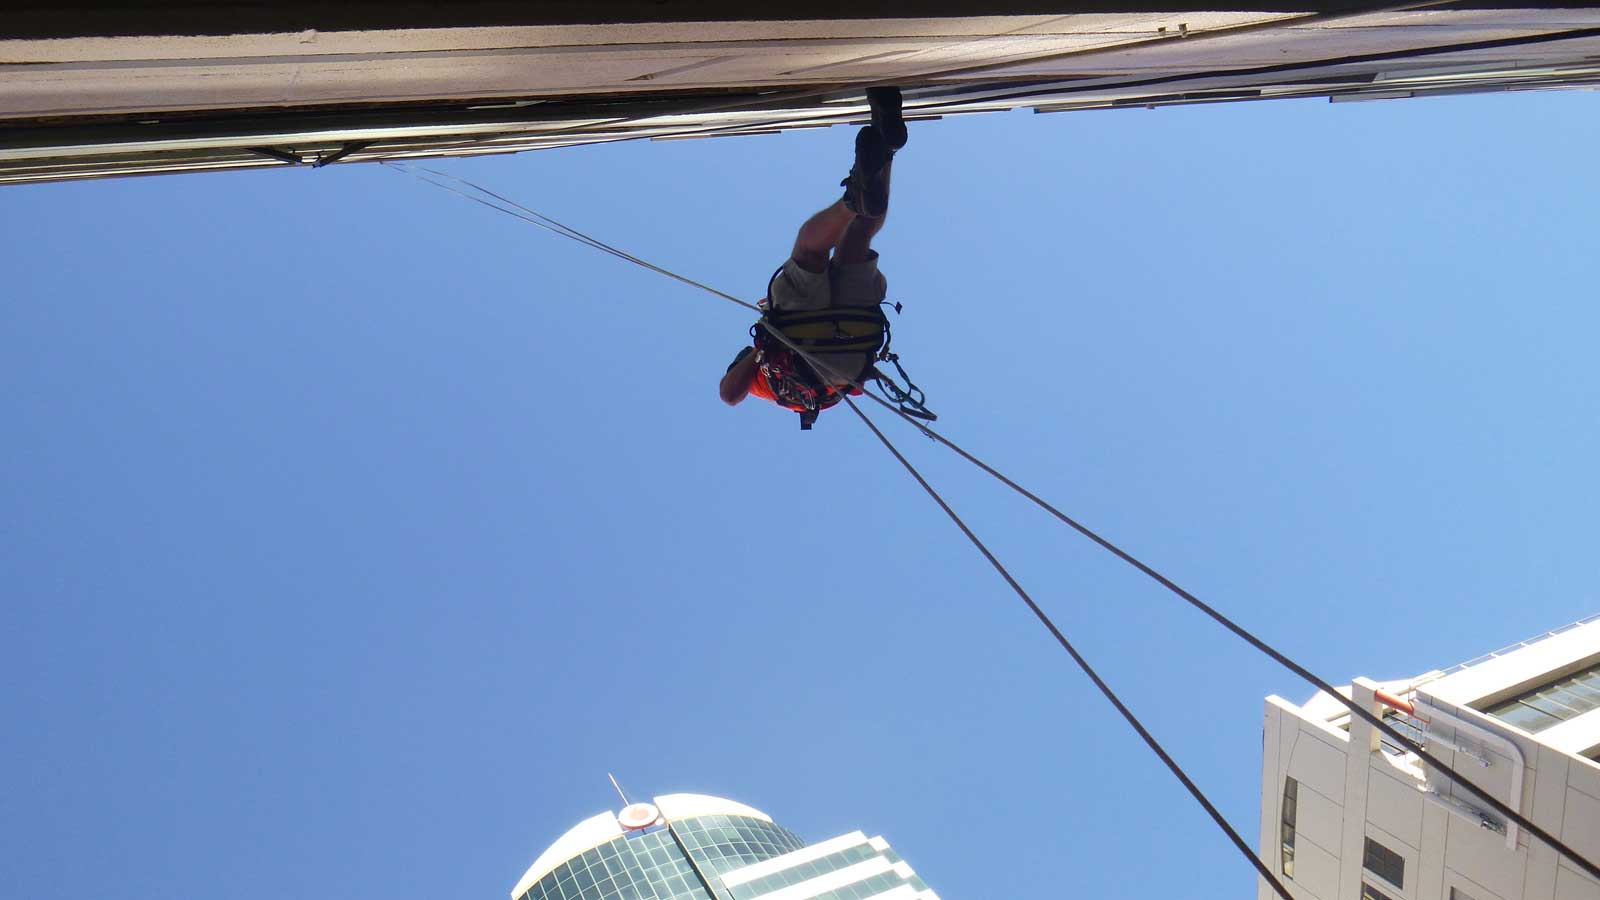 Abseil and Rope Access